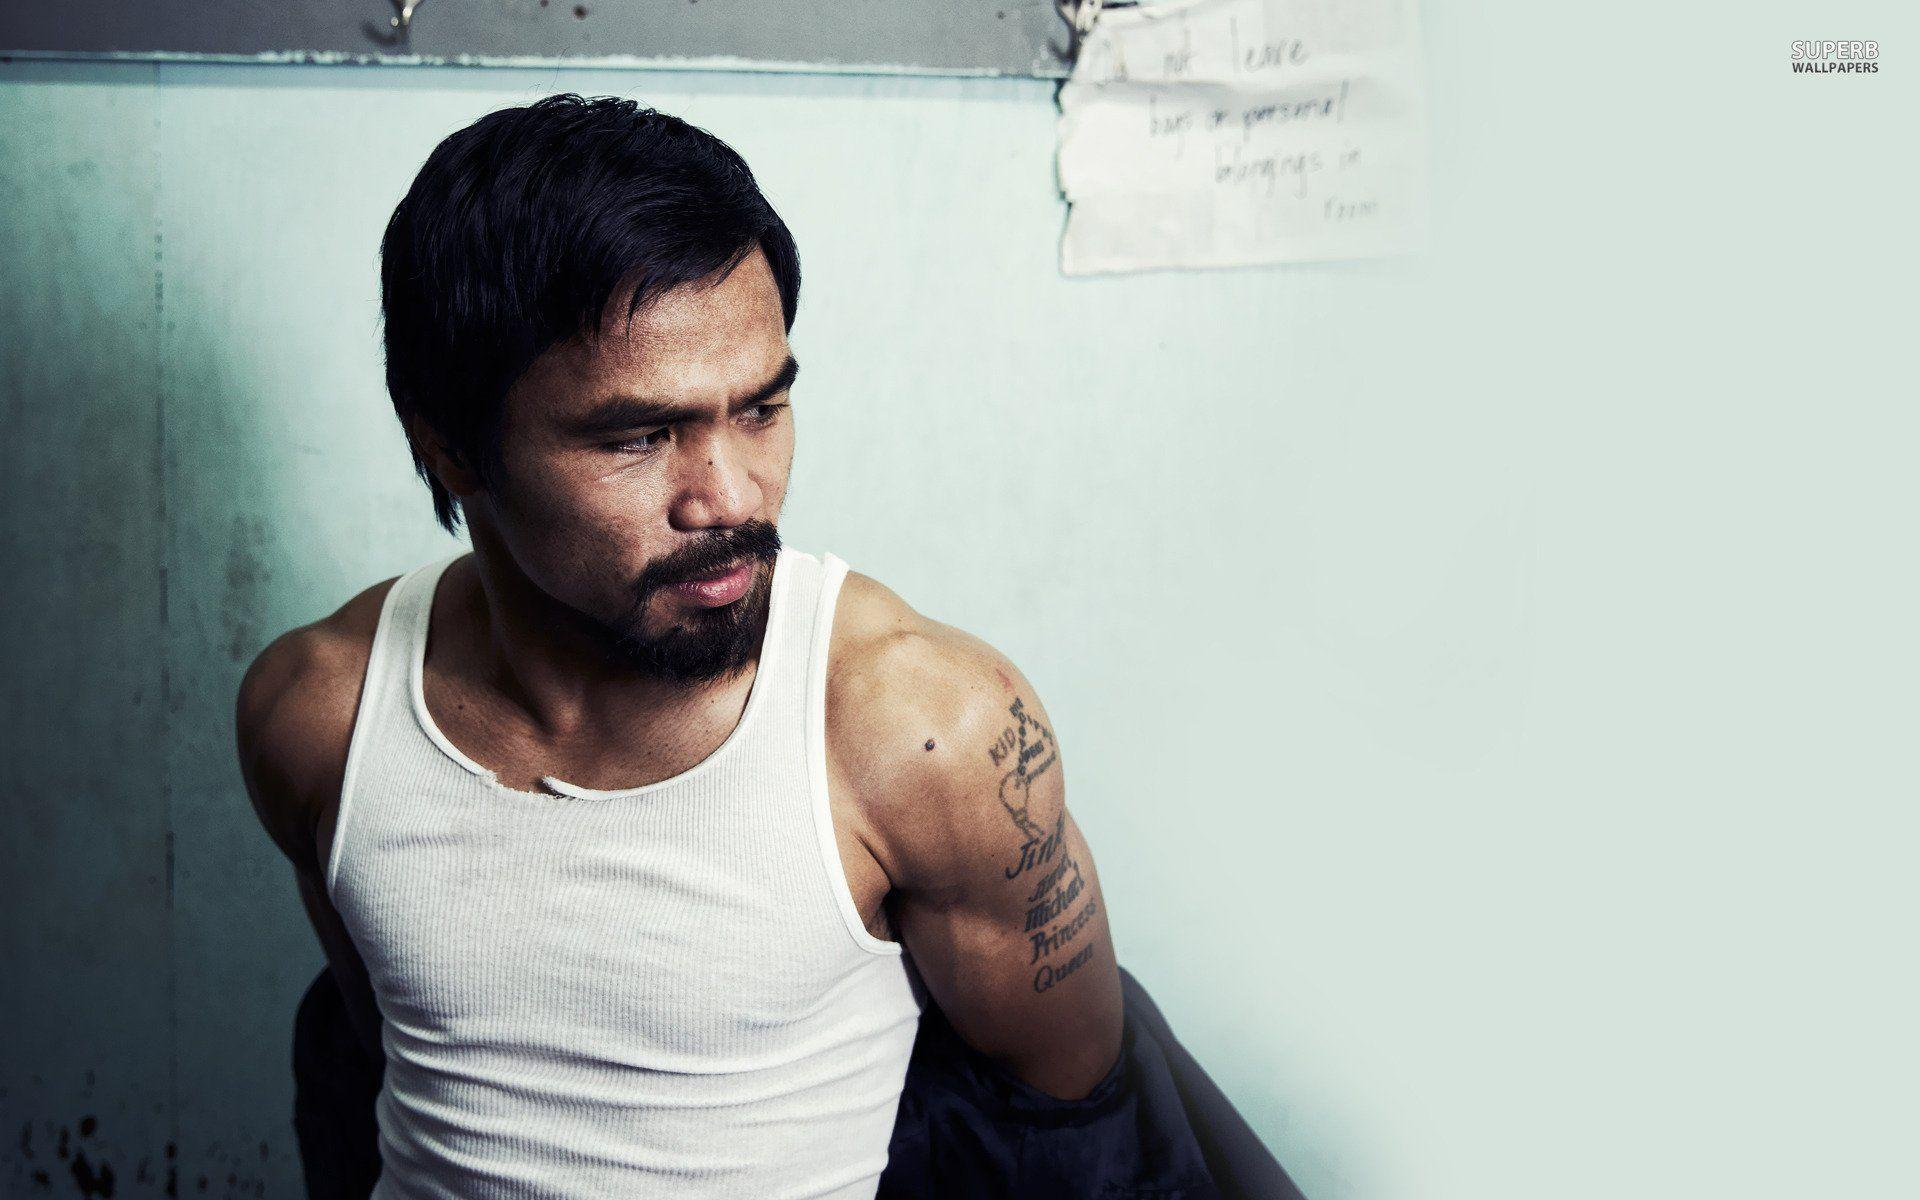 Manny Pacquiao Wallpapers Image Photos Pictures Backgrounds